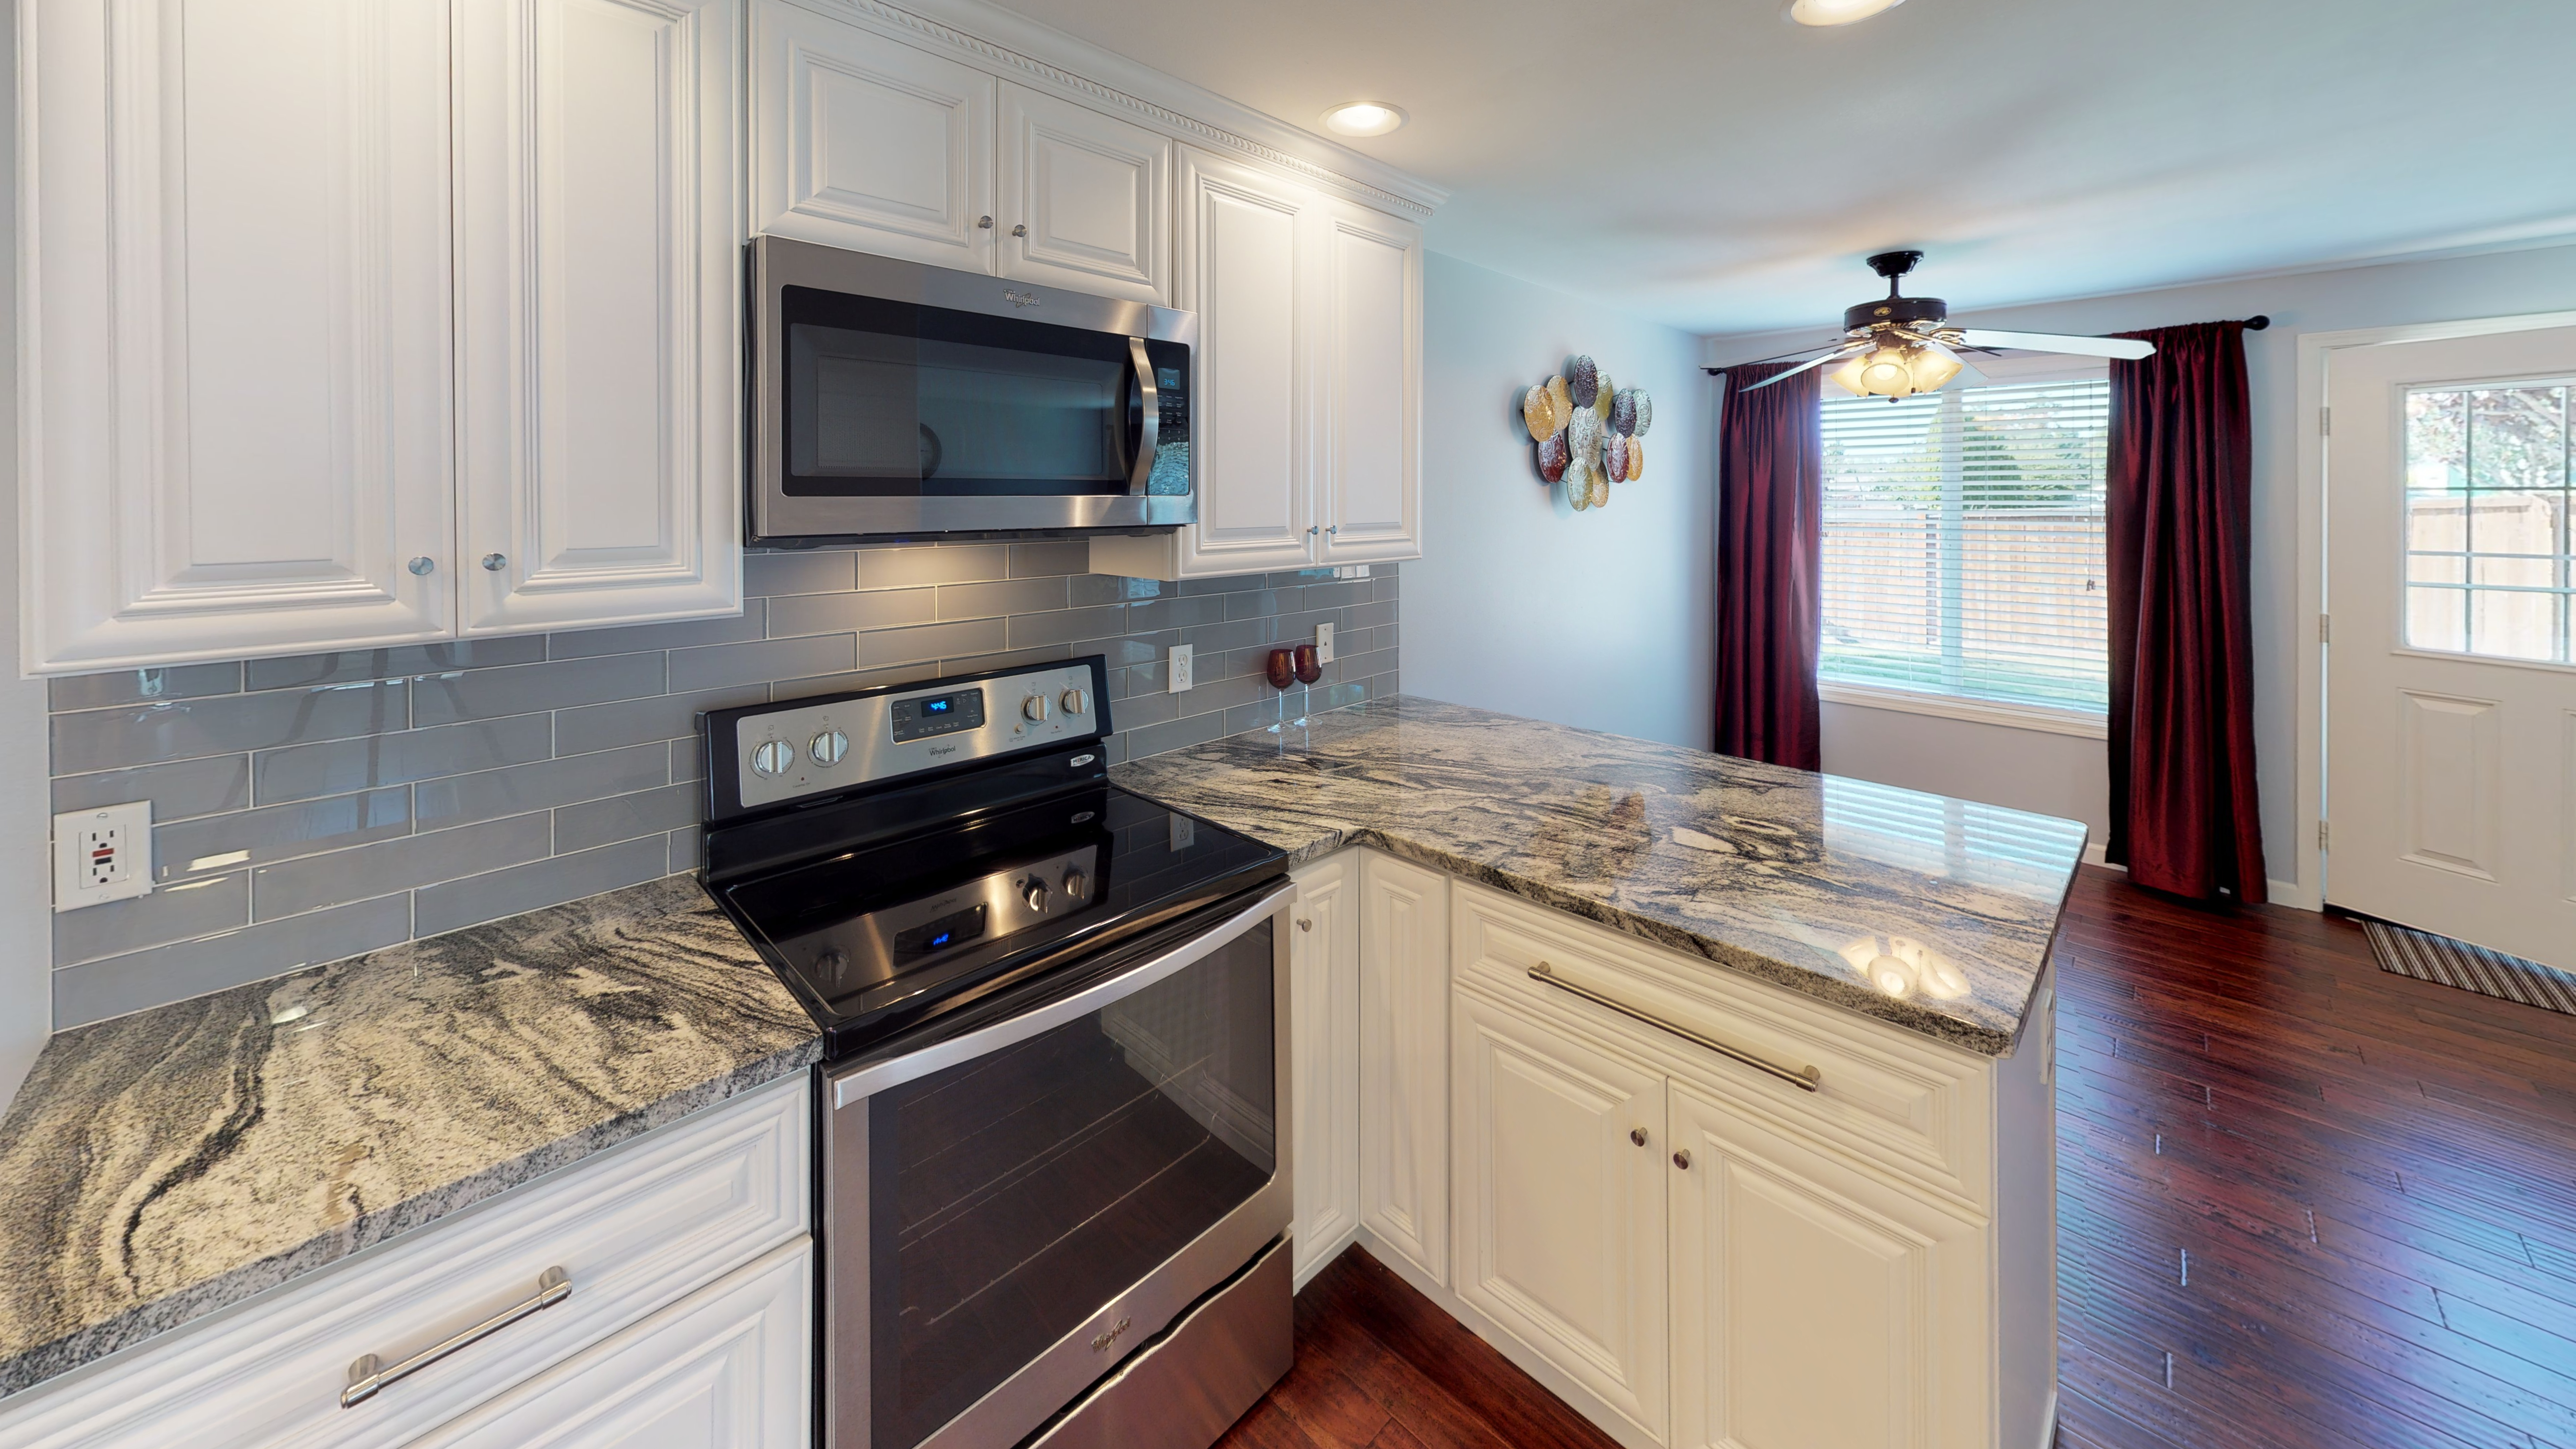 granite counter tops,